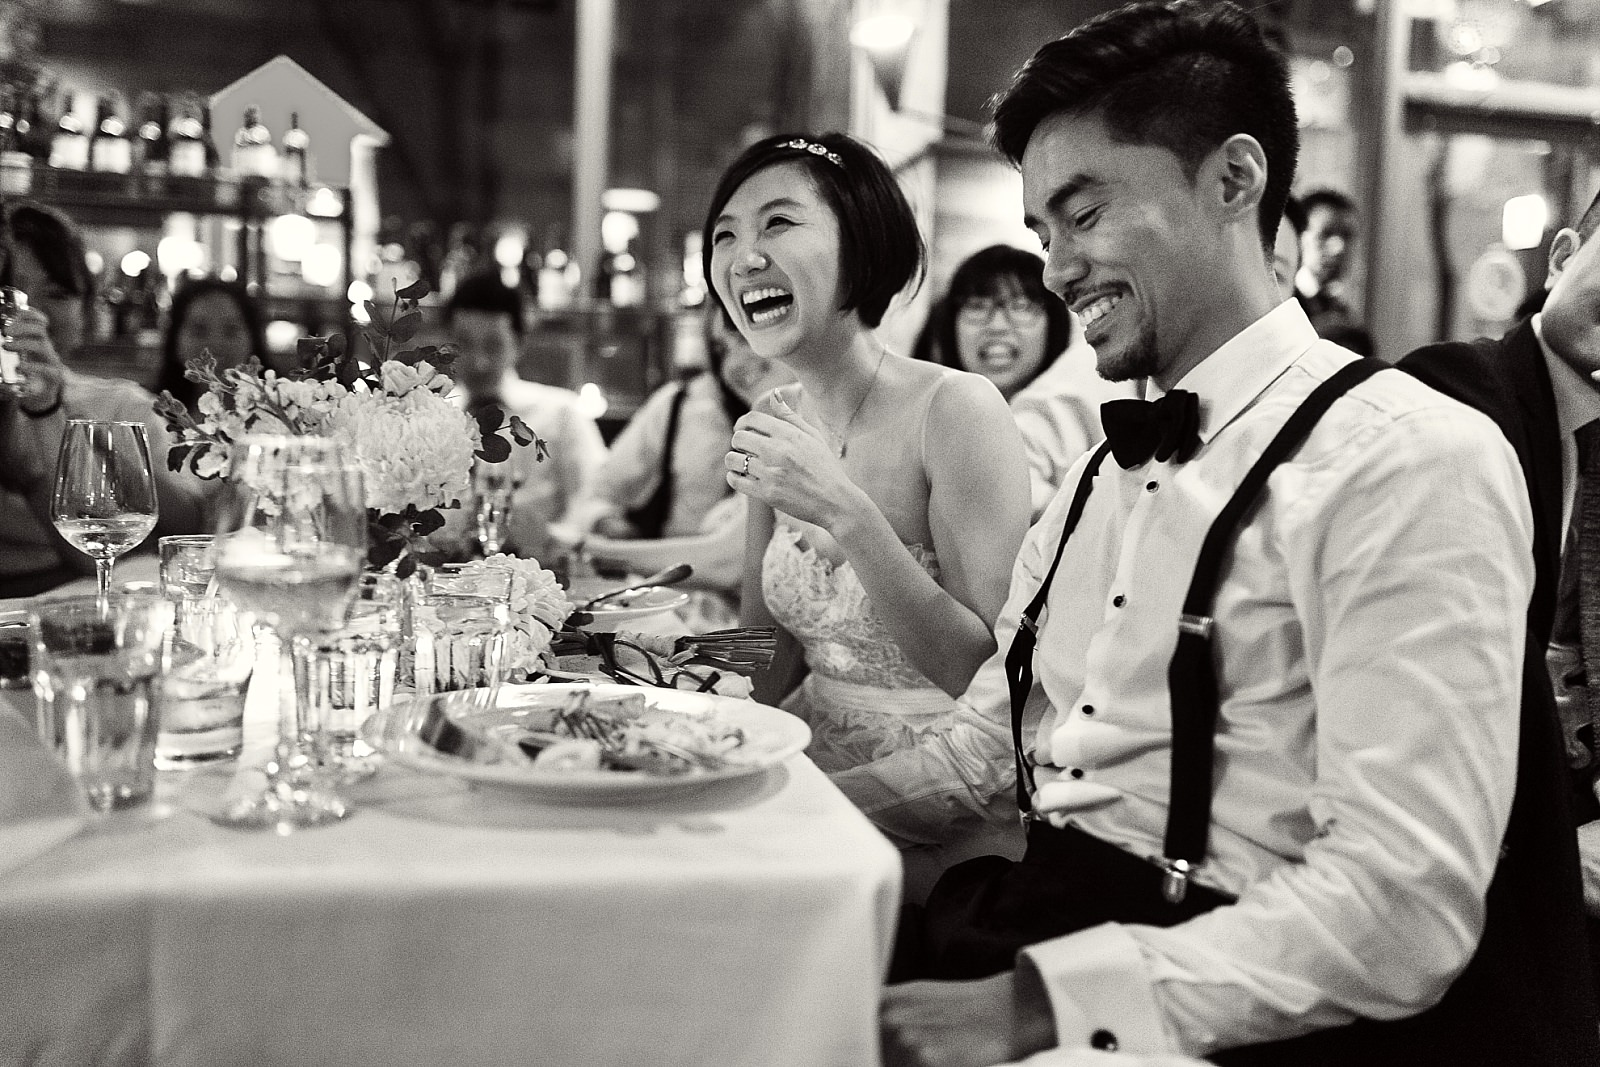 NYC_Wedding_Photographer_JeNi_Wed_39.jpg